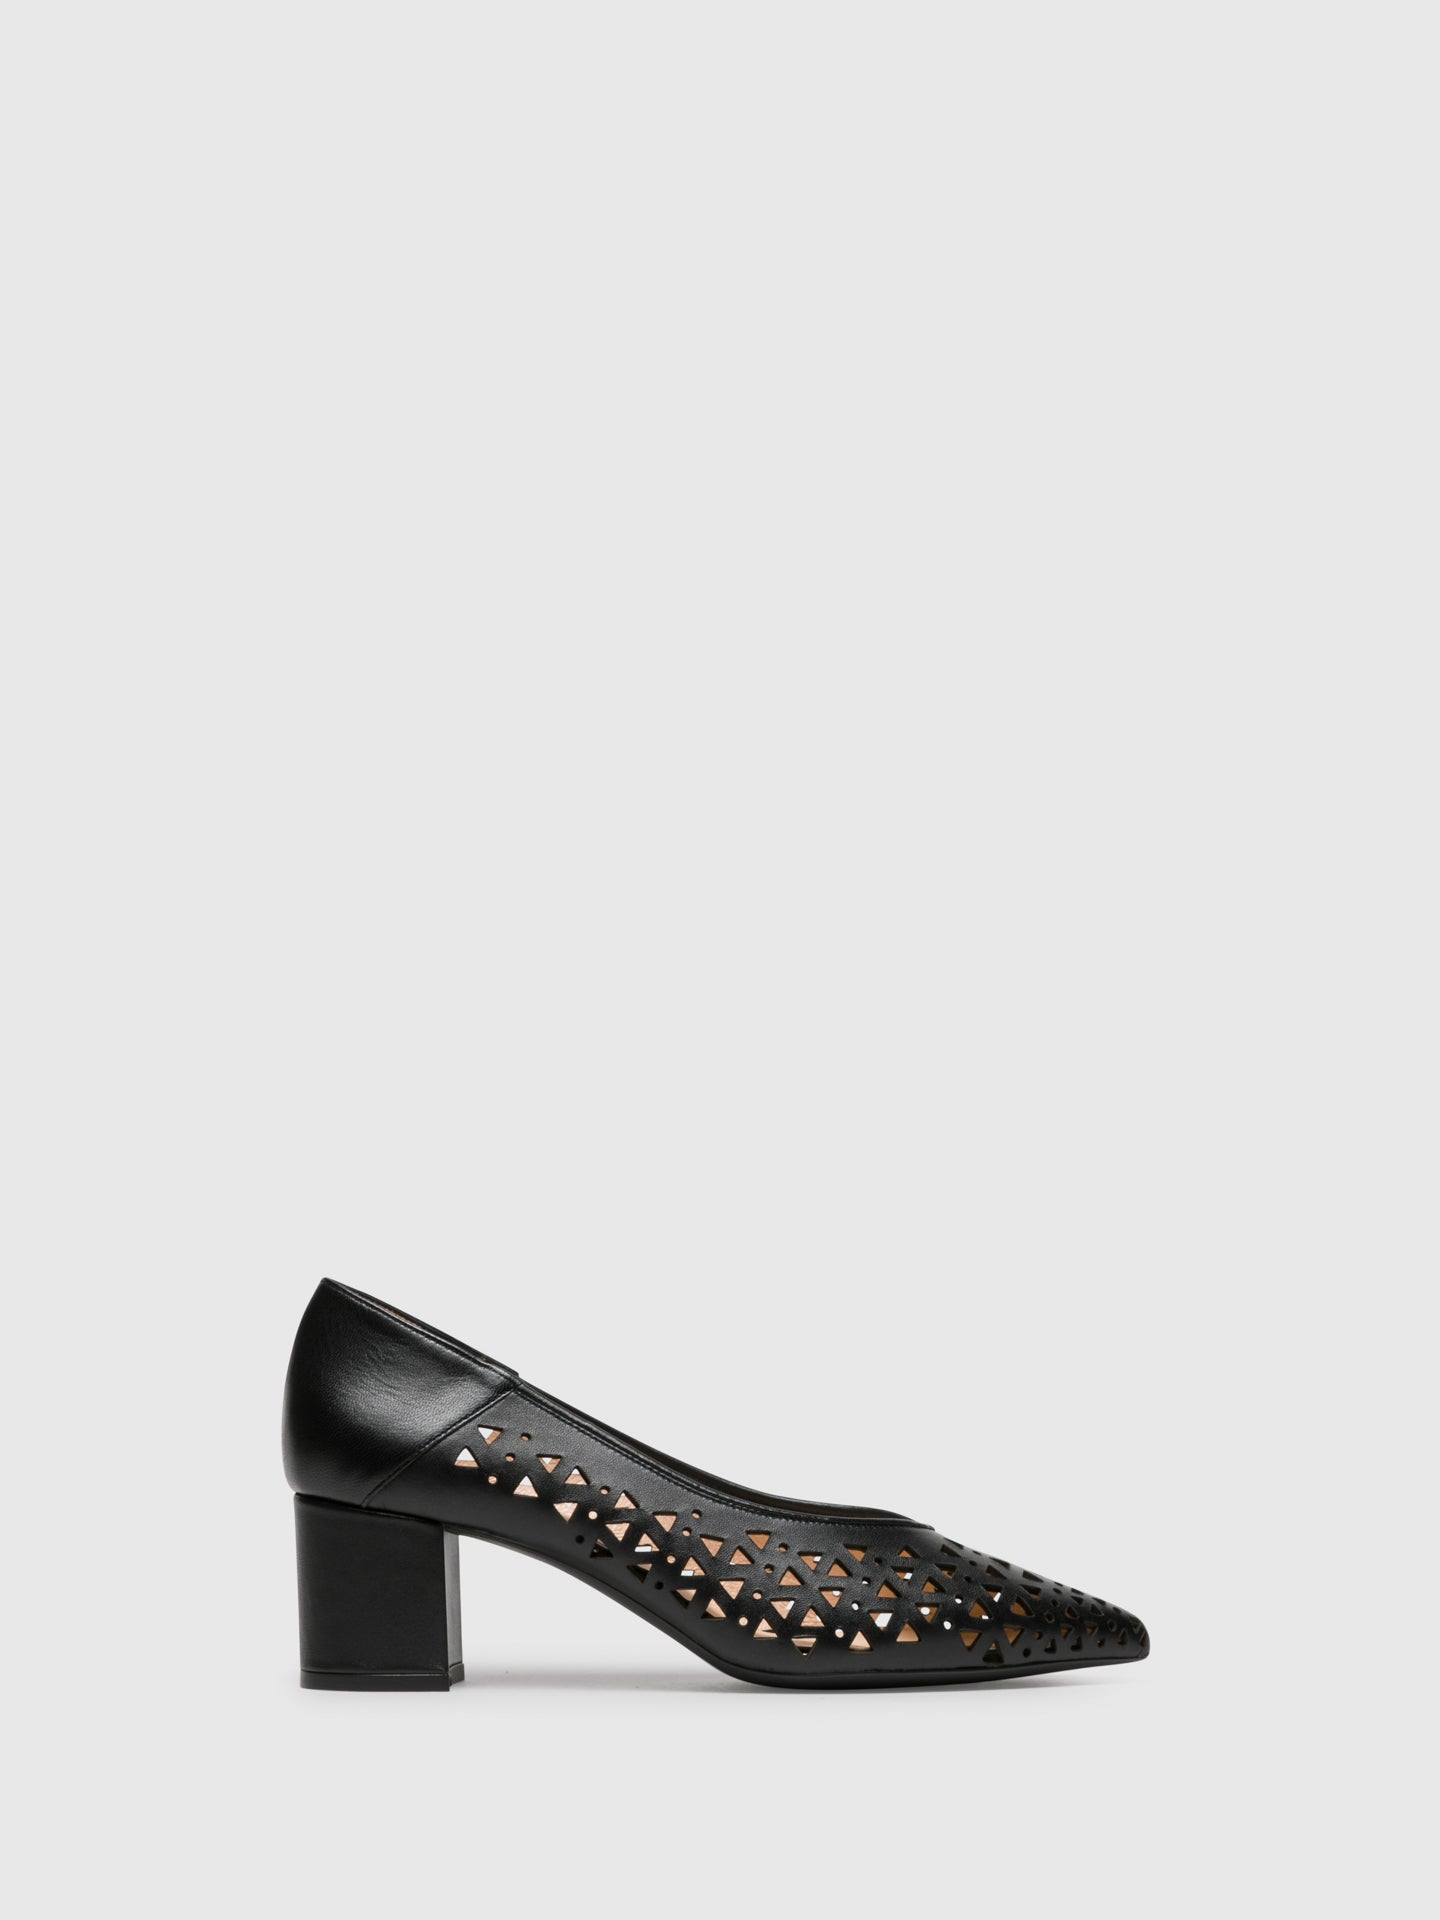 Sofia Costa Black Chunky Heel Shoes